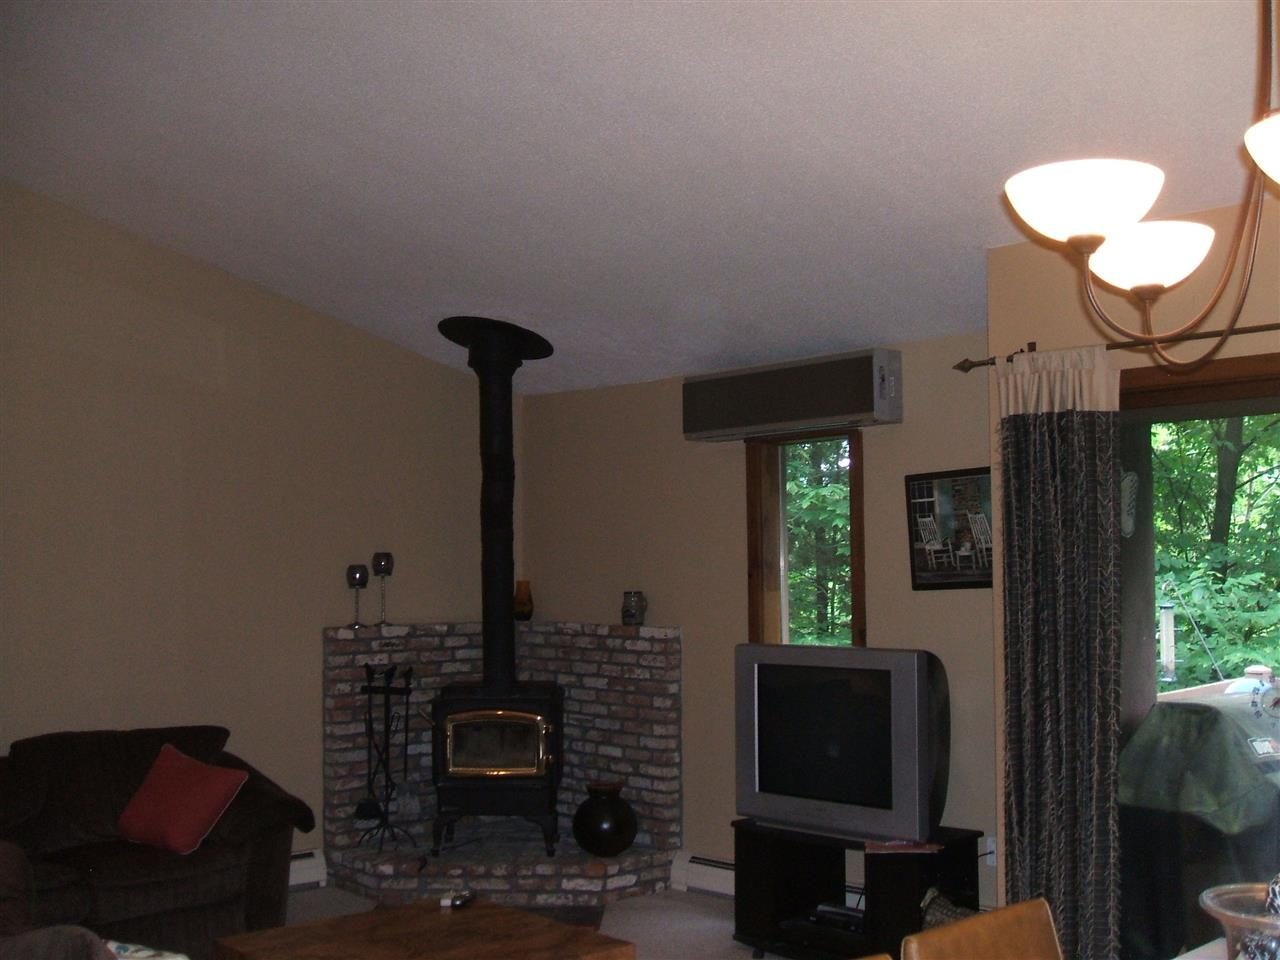 Woodstove and Wall A/C